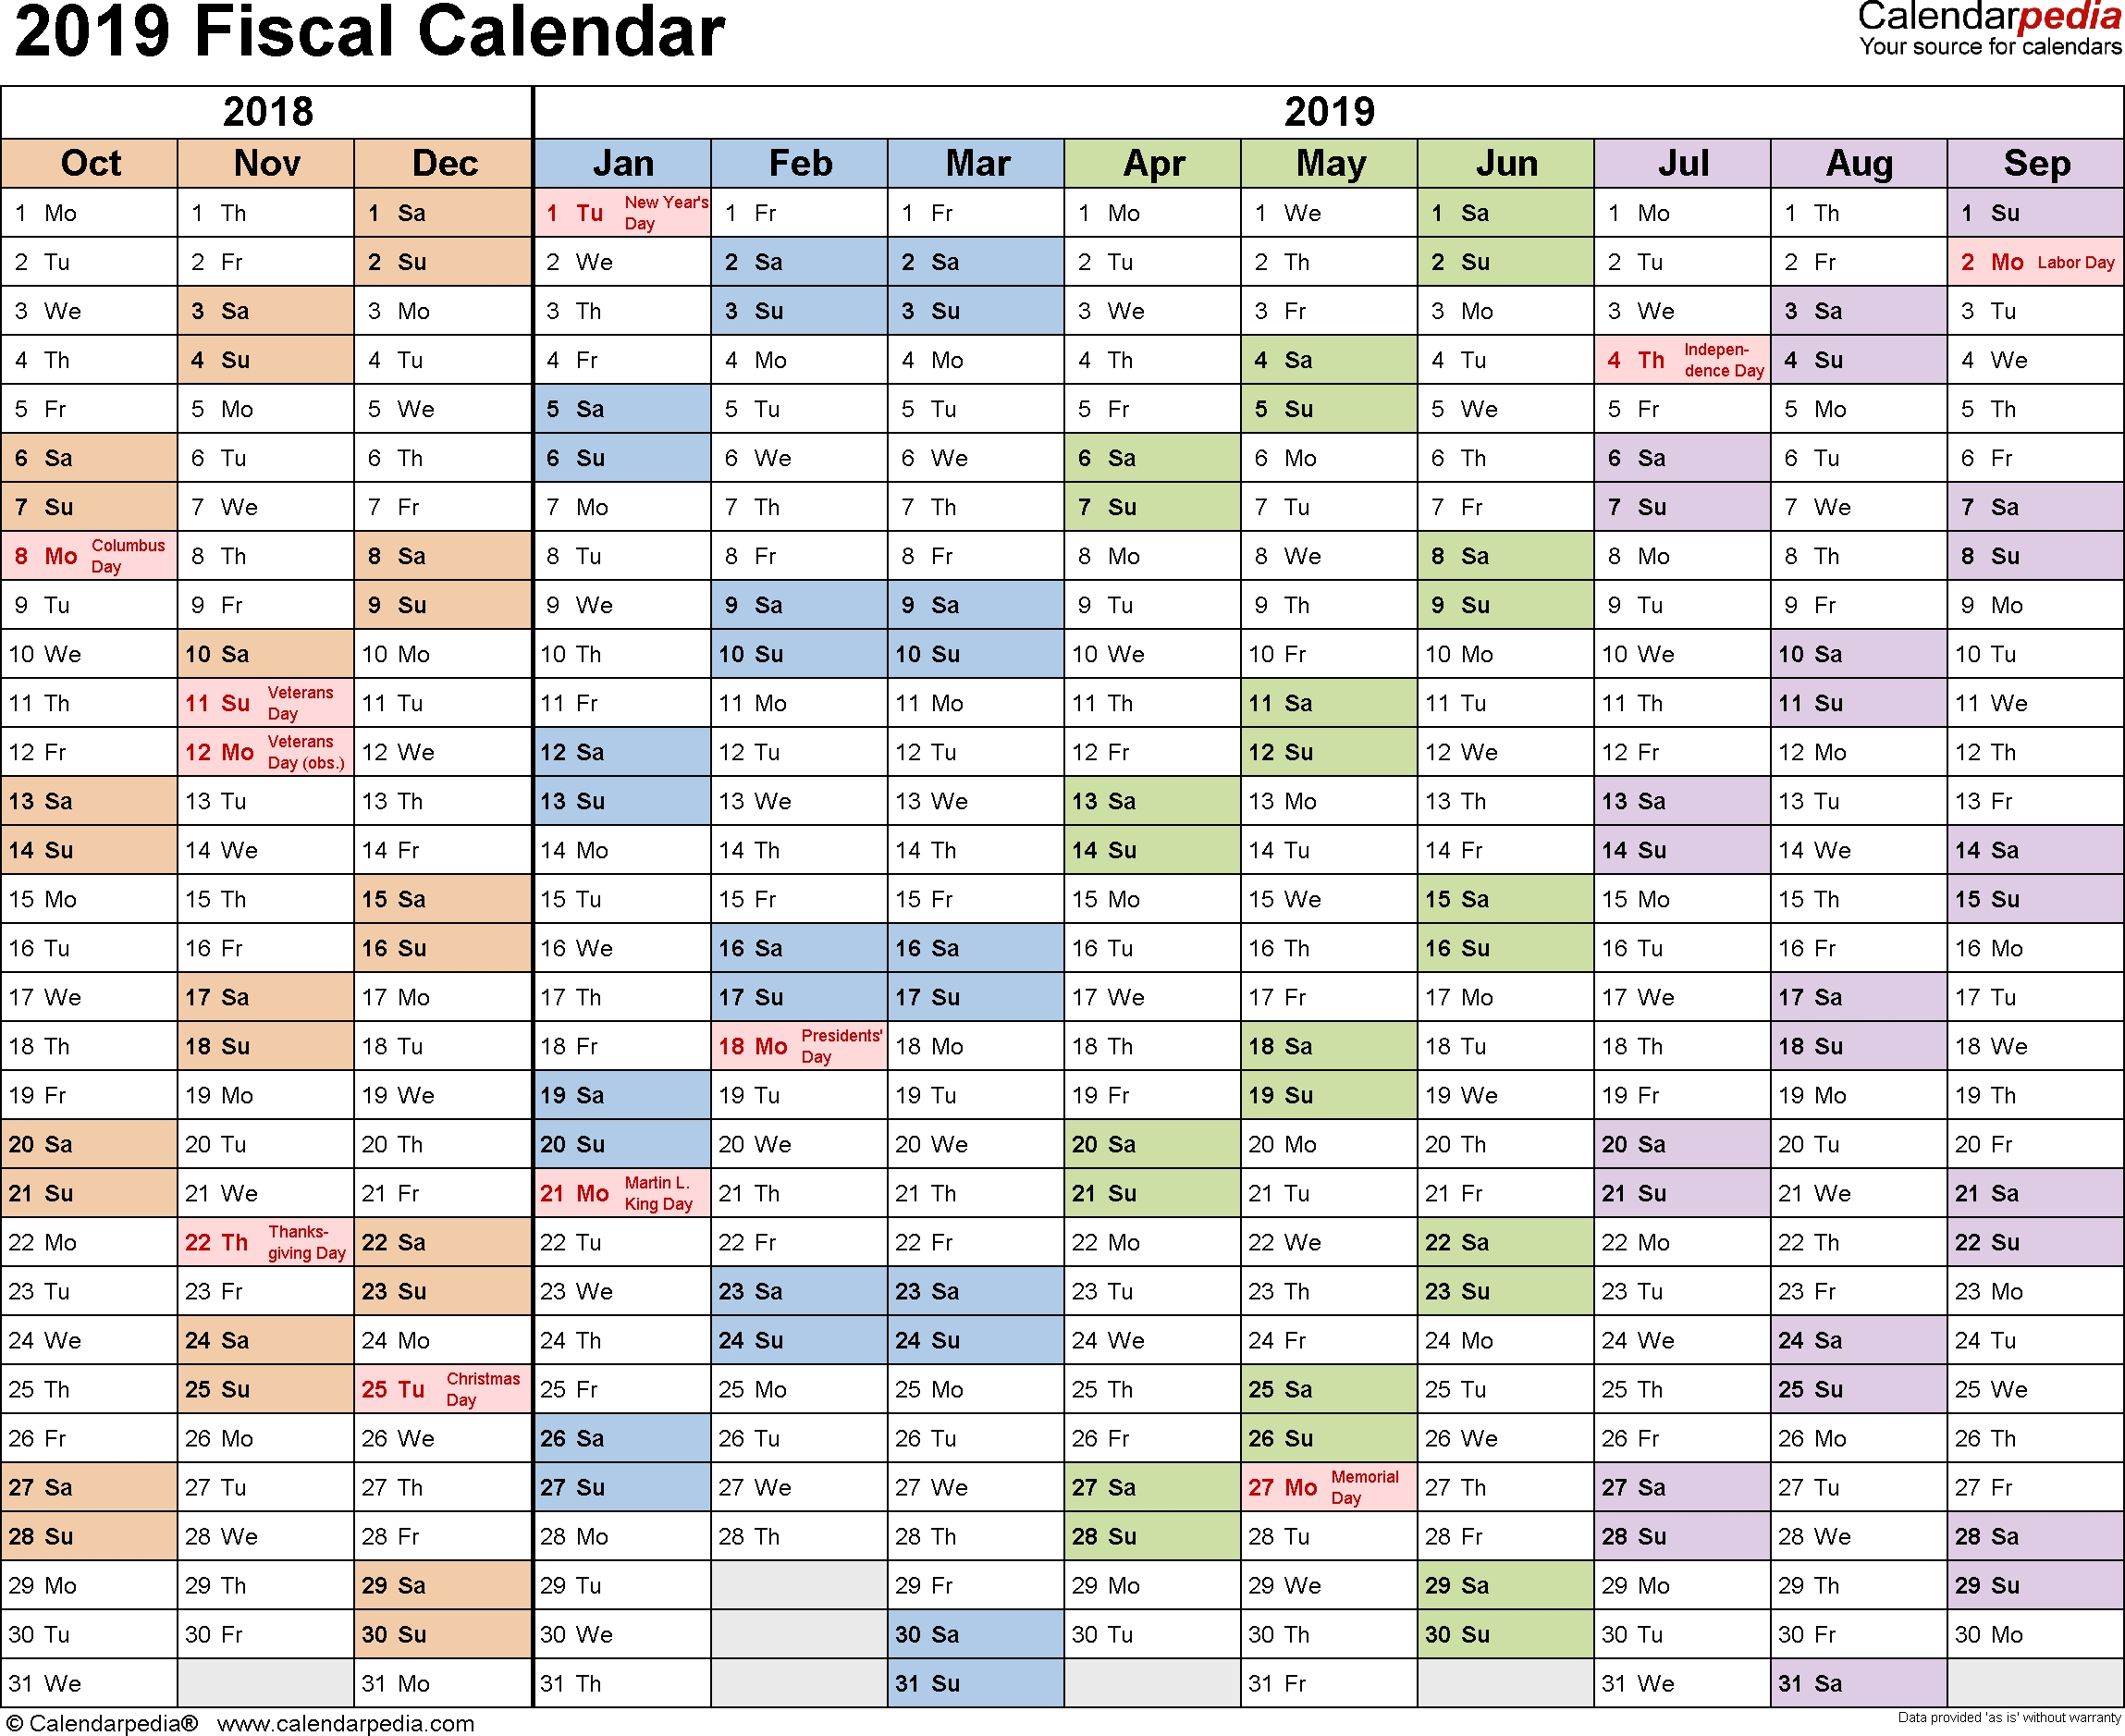 Fiscal Calendars 2019 As Free Printable Excel Templates with regard to Tax Calender 2019/2020